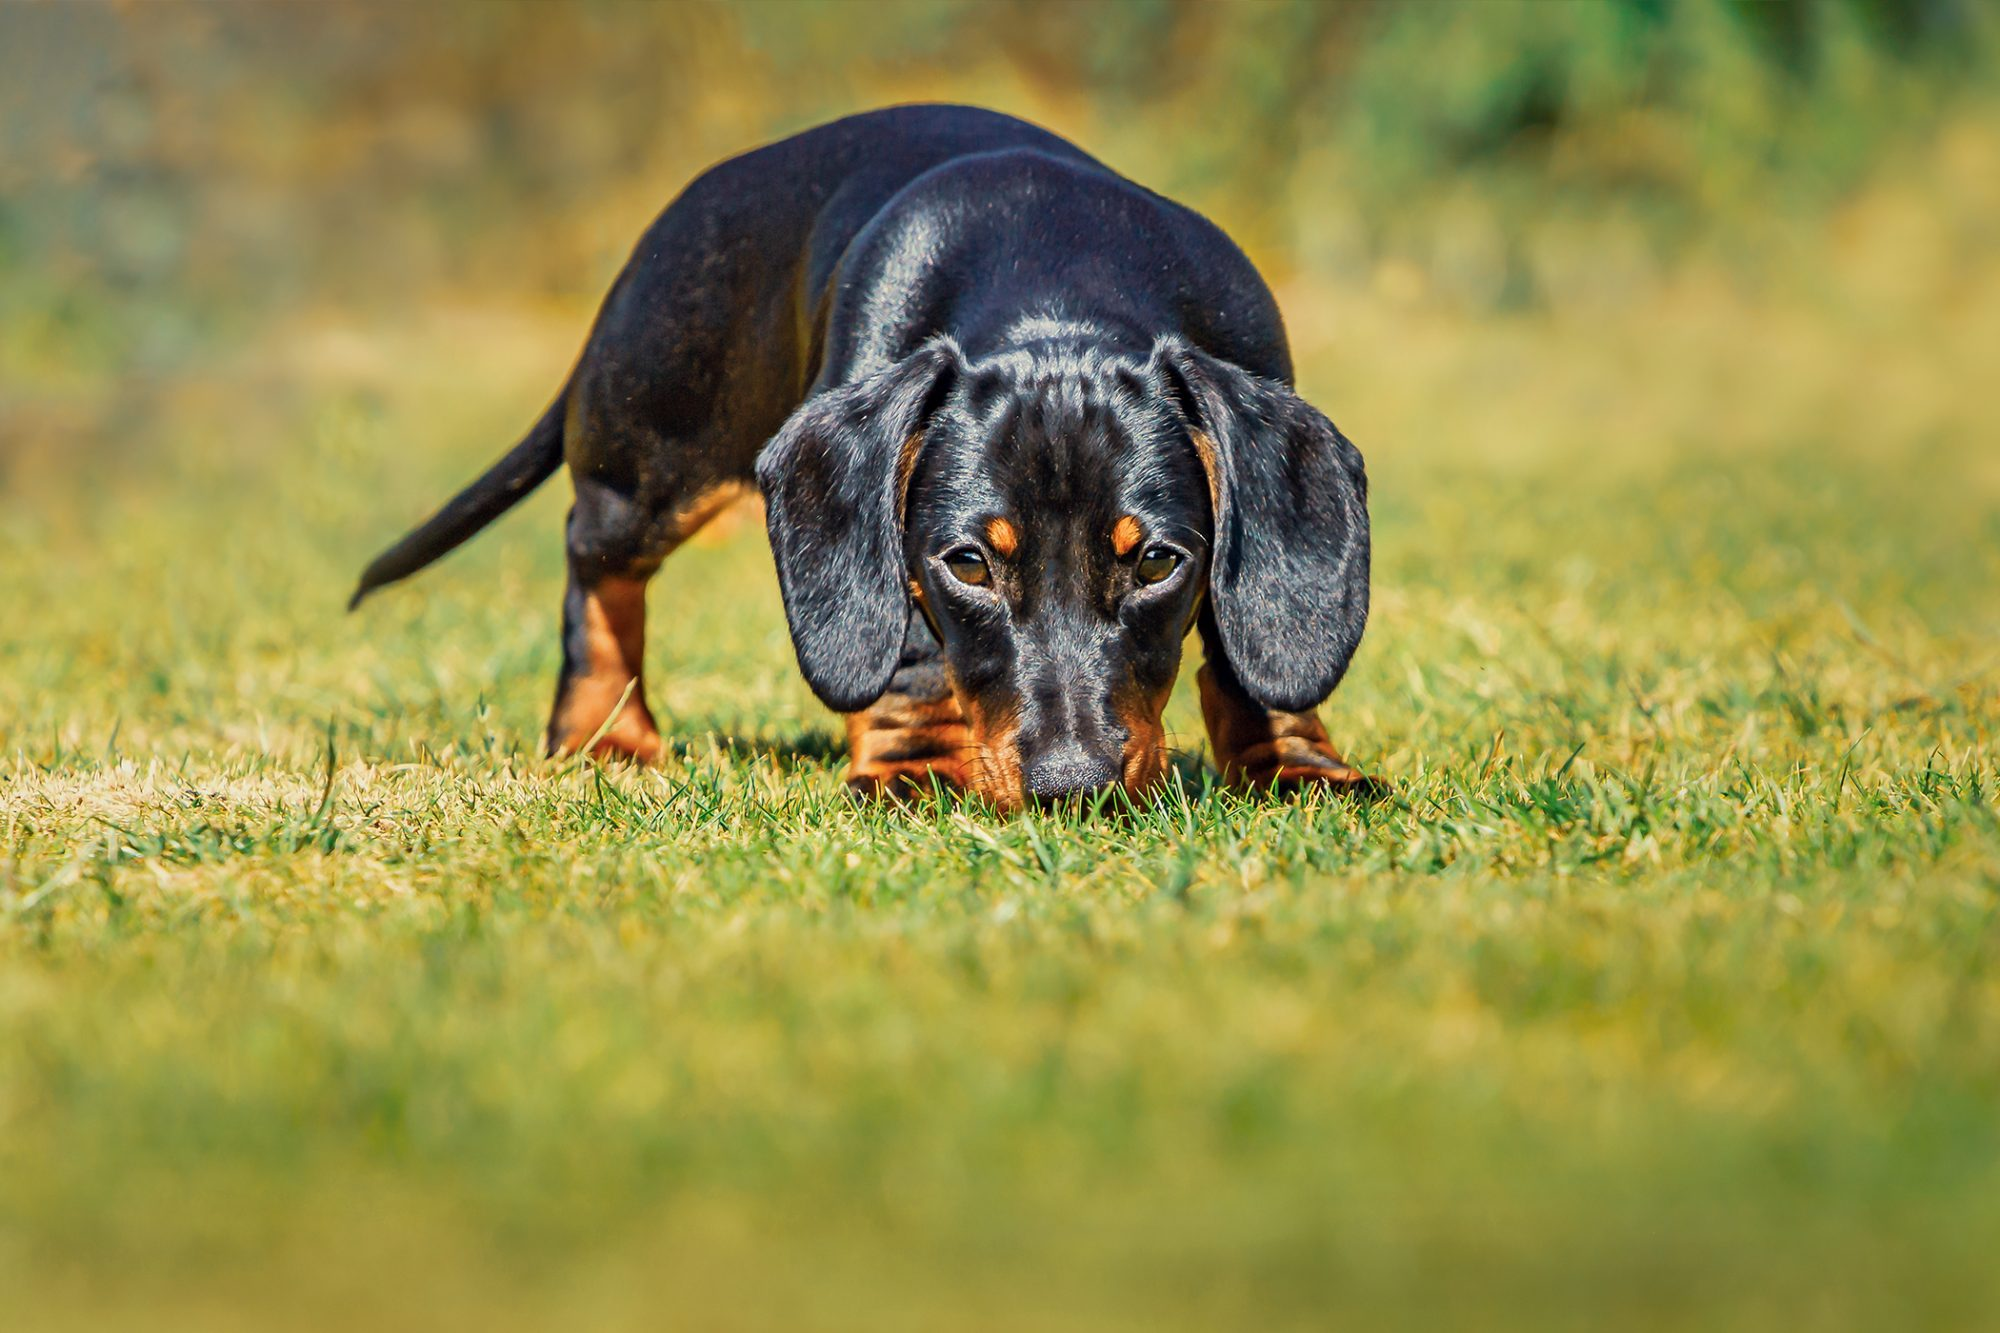 black dachshund sniffs grass